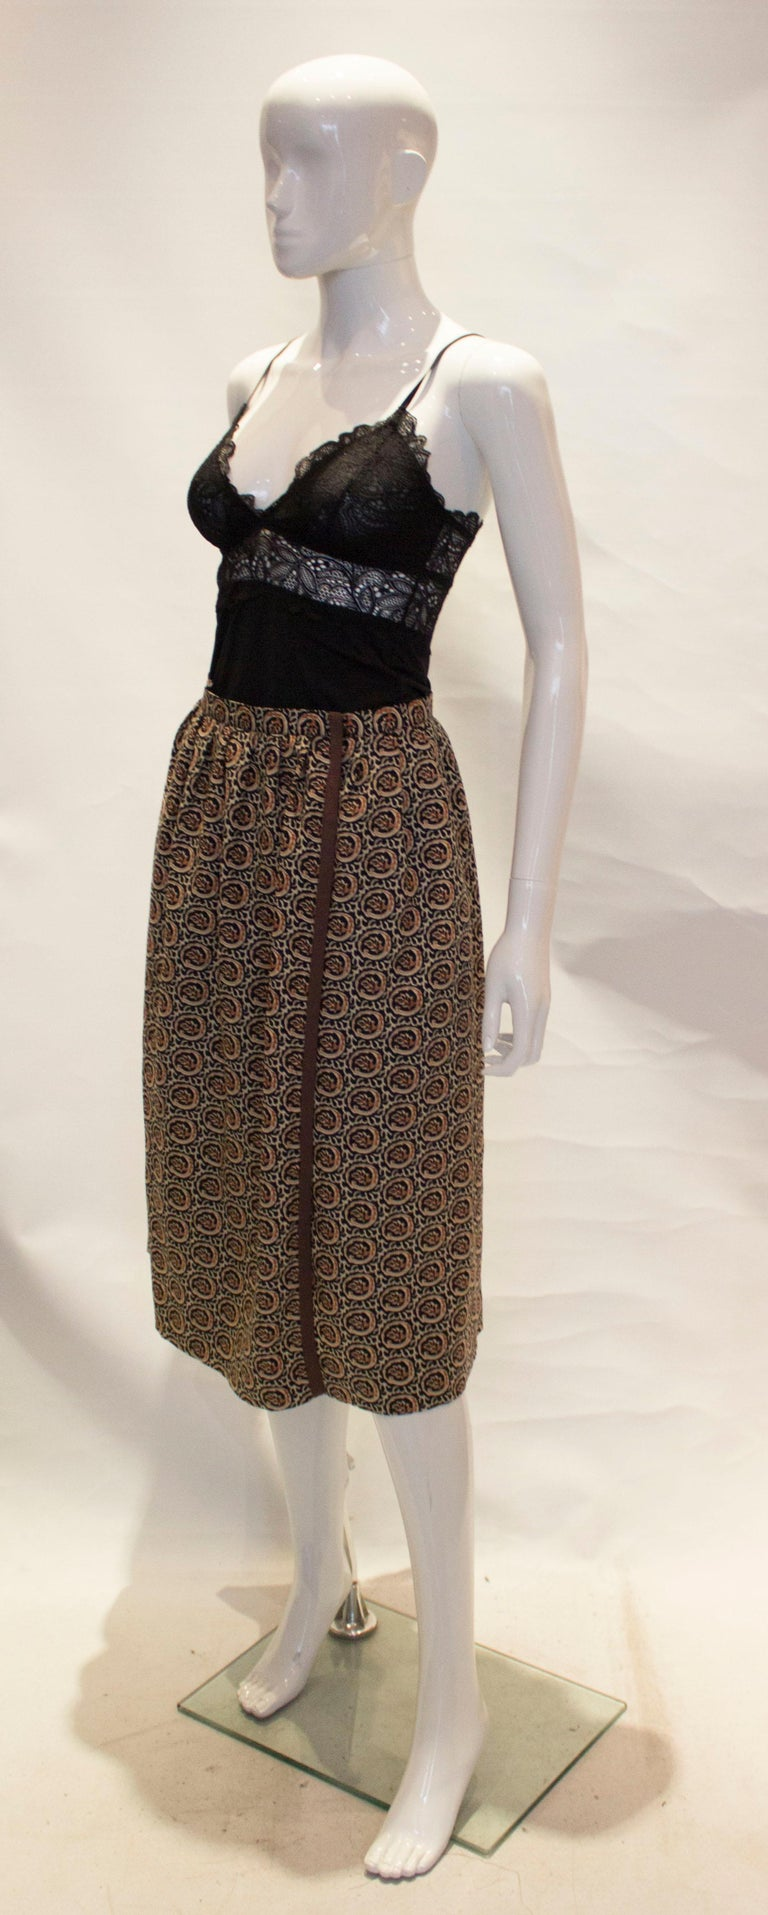 Vintage Yves Saint Laurent Rive Gauche Wrap Over Skirt In Good Condition For Sale In London, GB